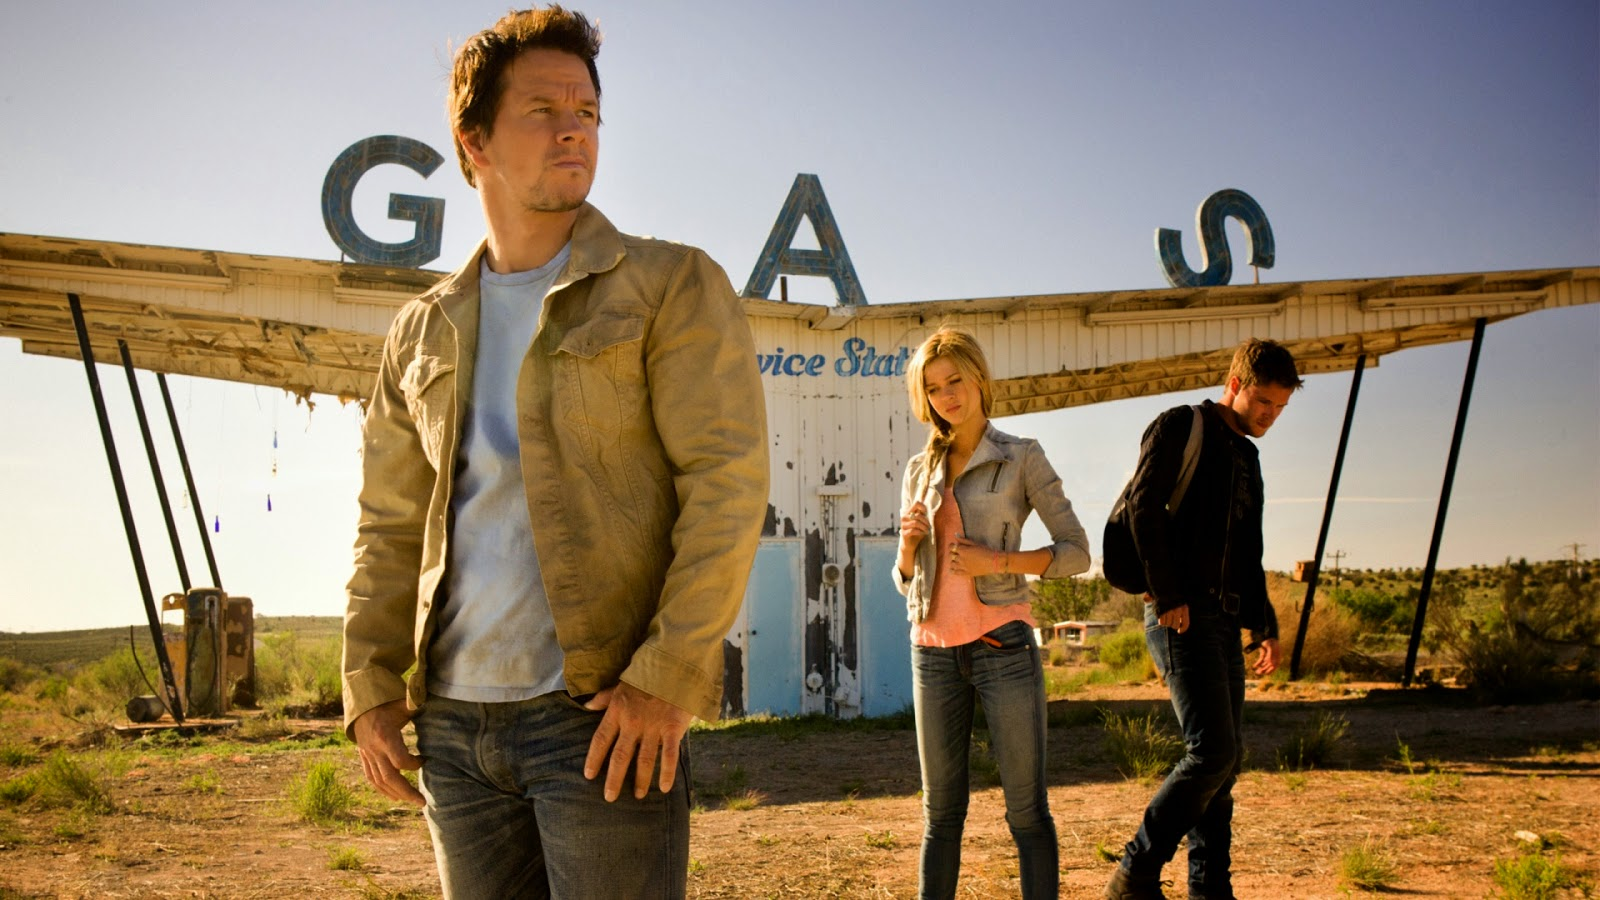 Mark Wahlberg, daughter Nicola Peltz, her boyfriend Jack Reynor in Transformers: Age of Extinction (2014)